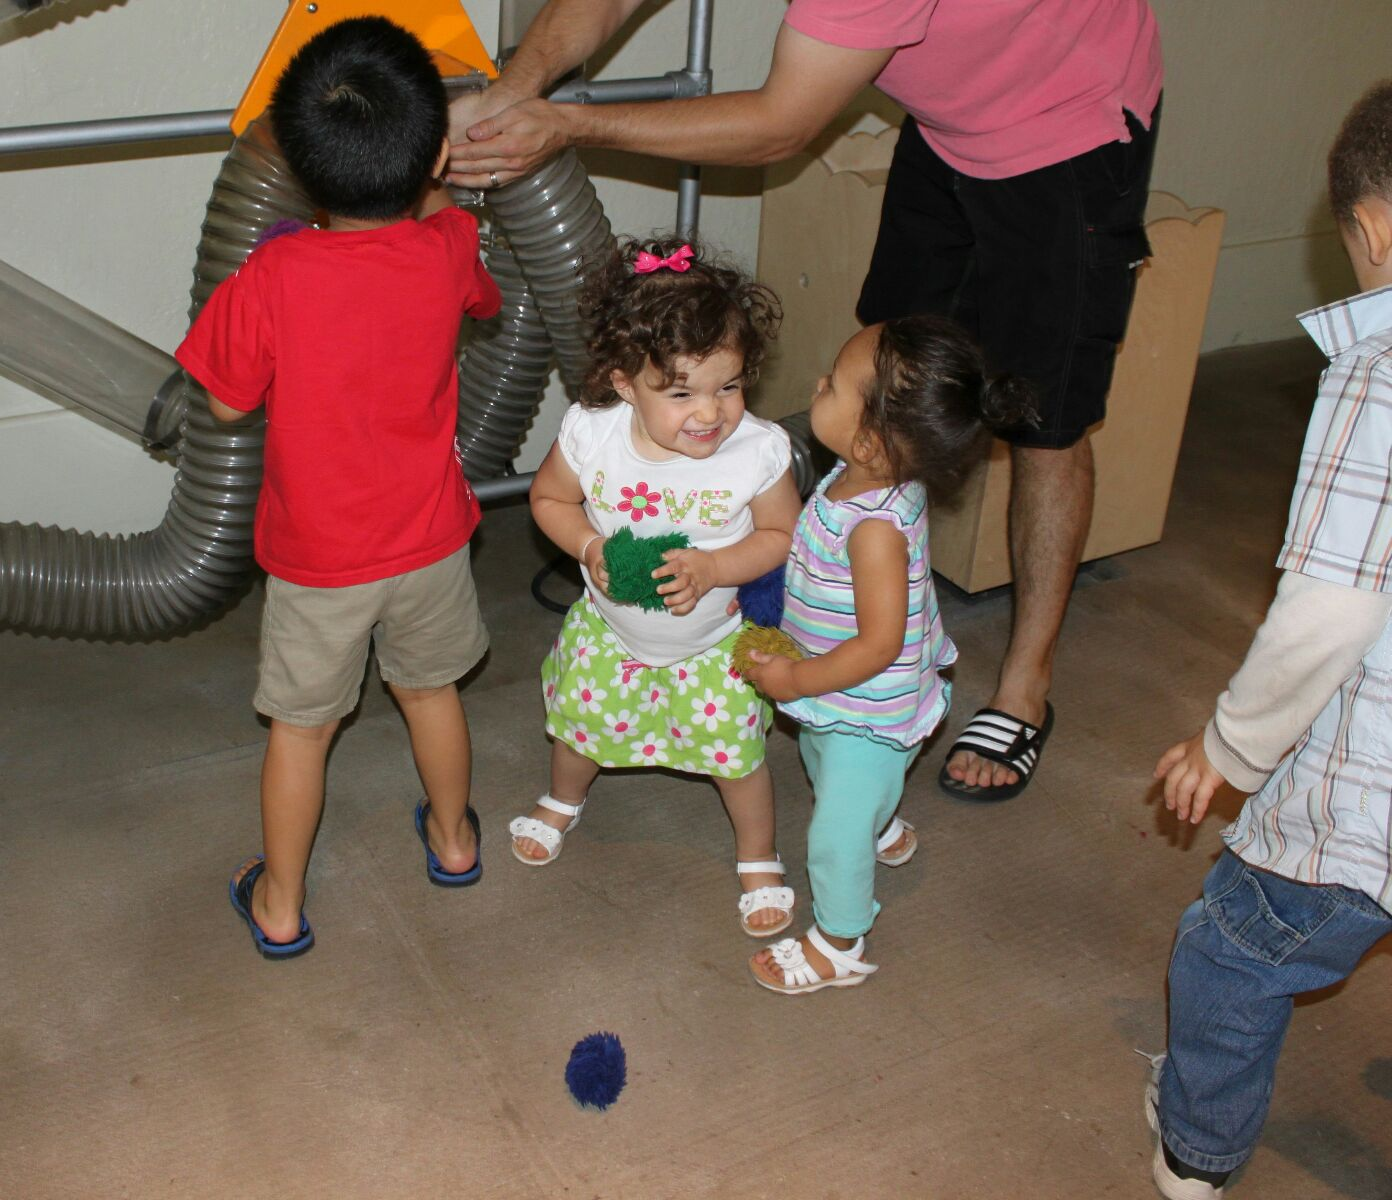 sofia playing at childrens museum.jpg